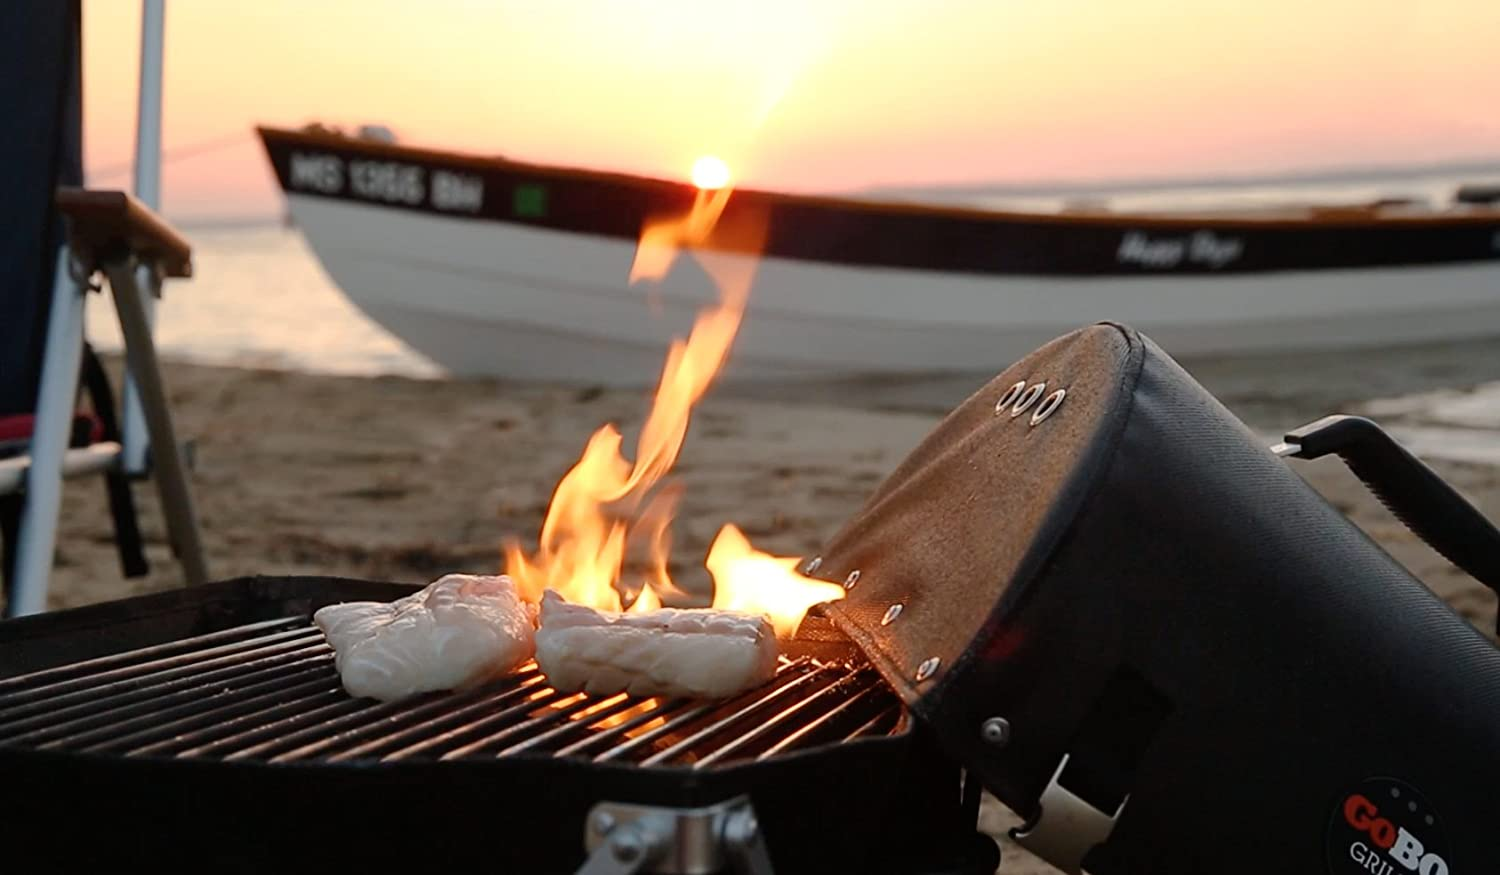 Boating Hunting Hiking Travel Perfect for Camping Biking Fishing College Students Tailgating GoBQ Portable Charcoal Grill RVs The Beach Fits in a Backpack Urbanites and Gifting